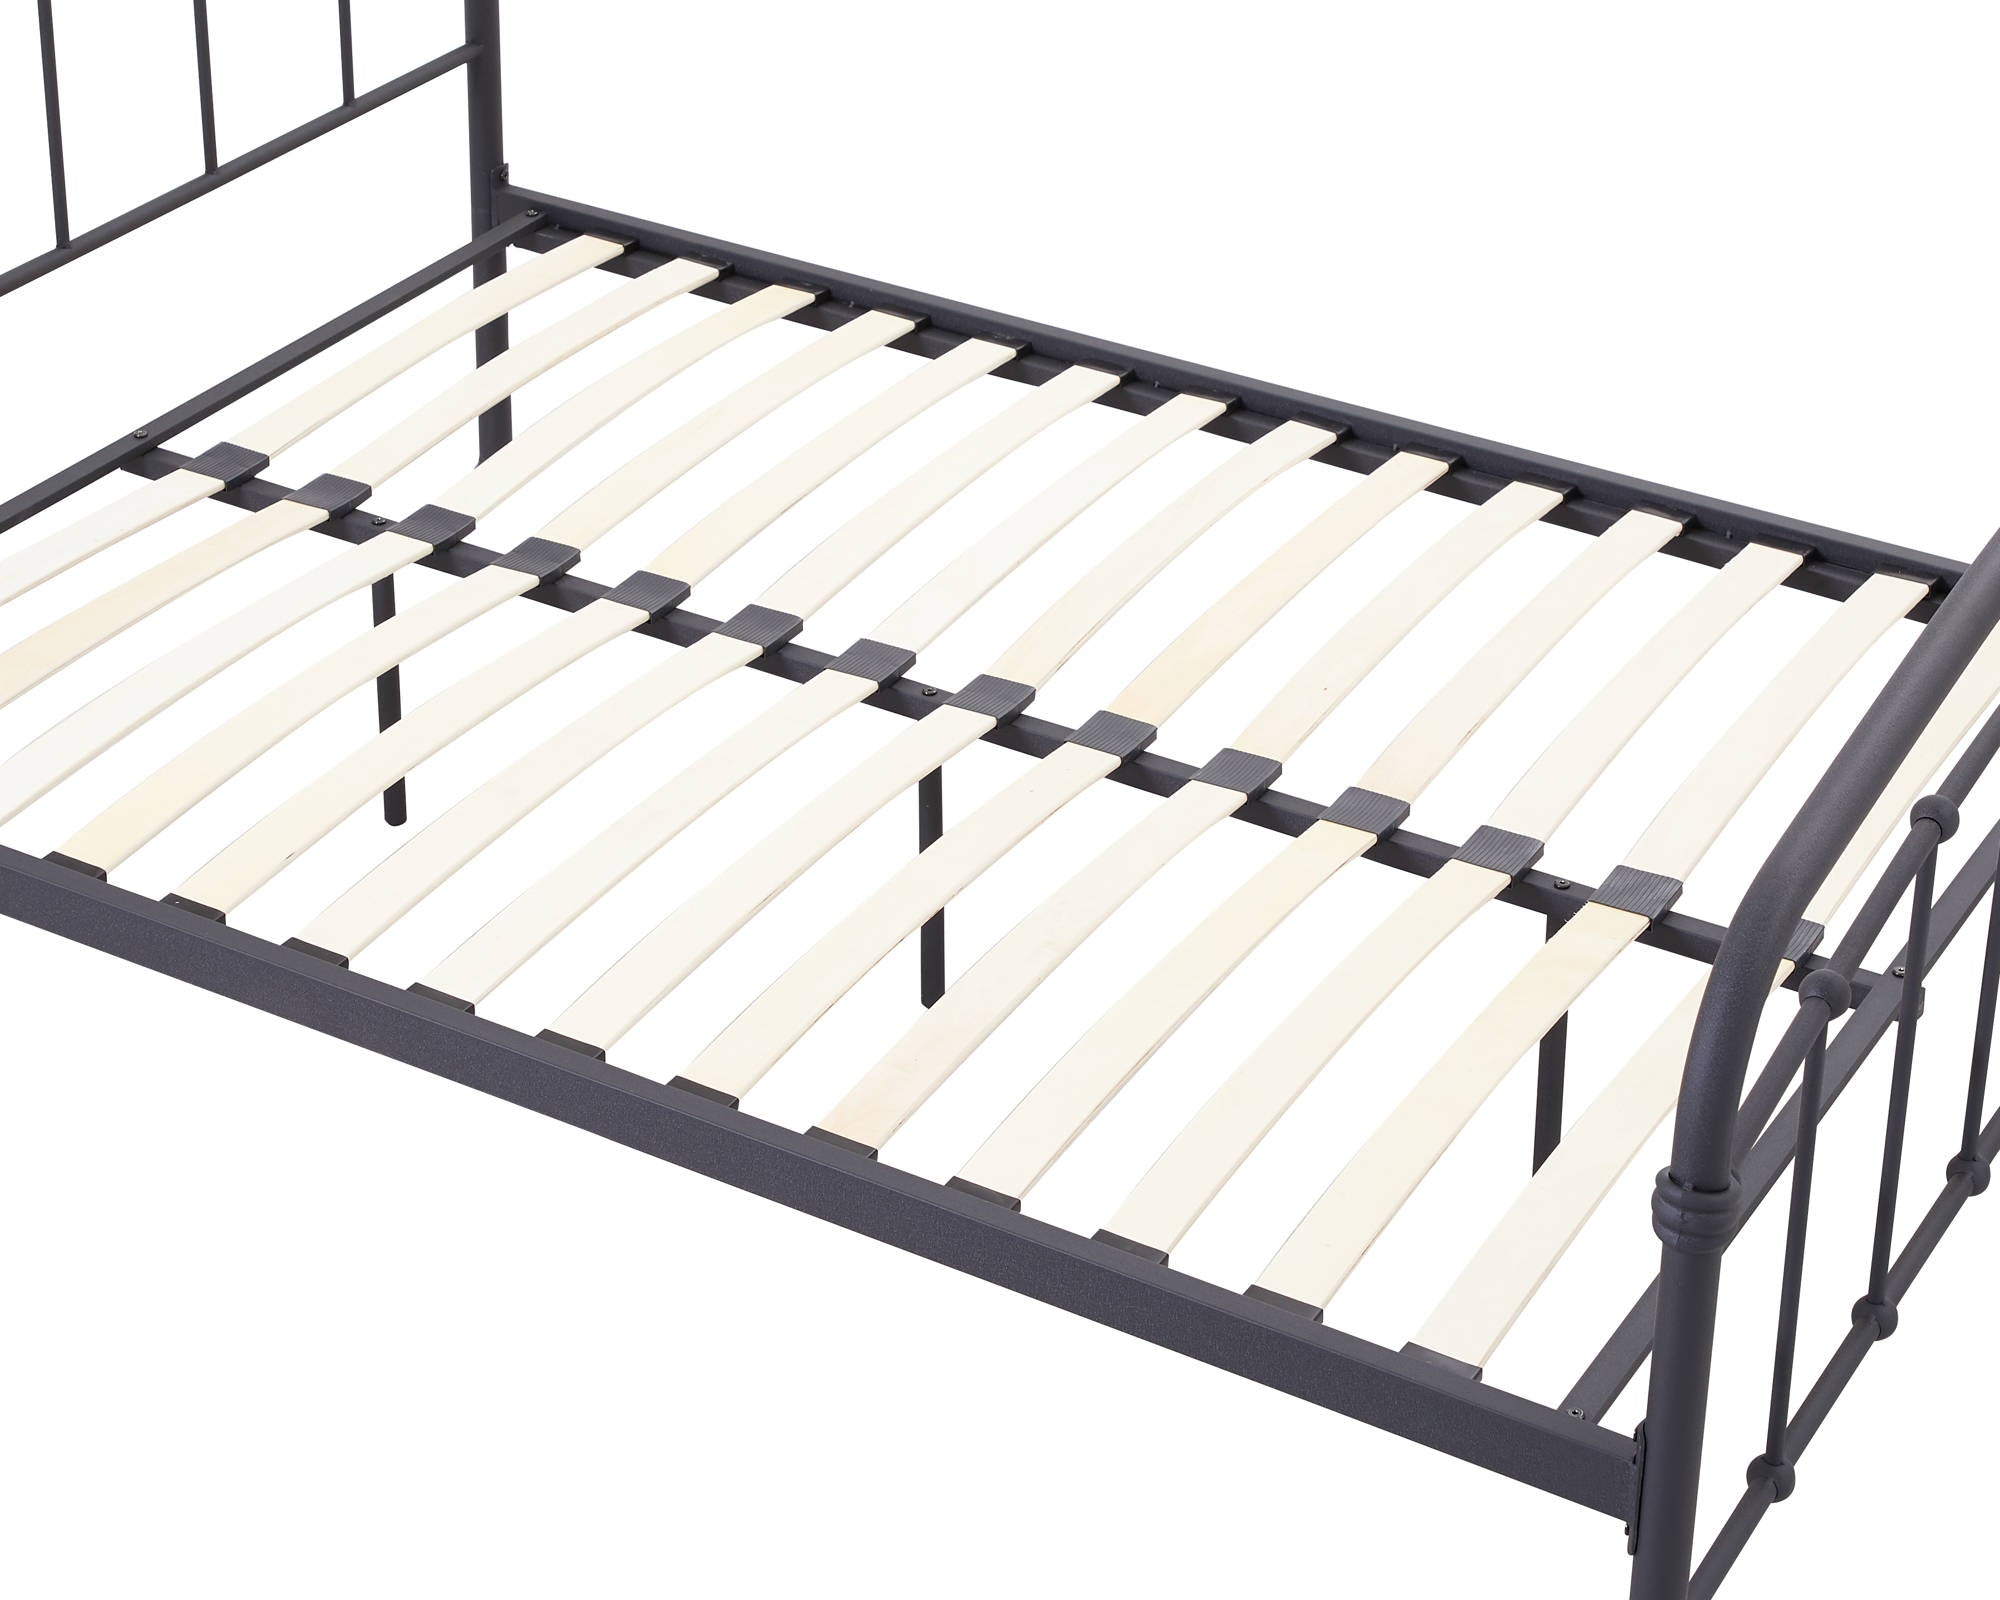 Stretton Double Bed in Black - Ezzo